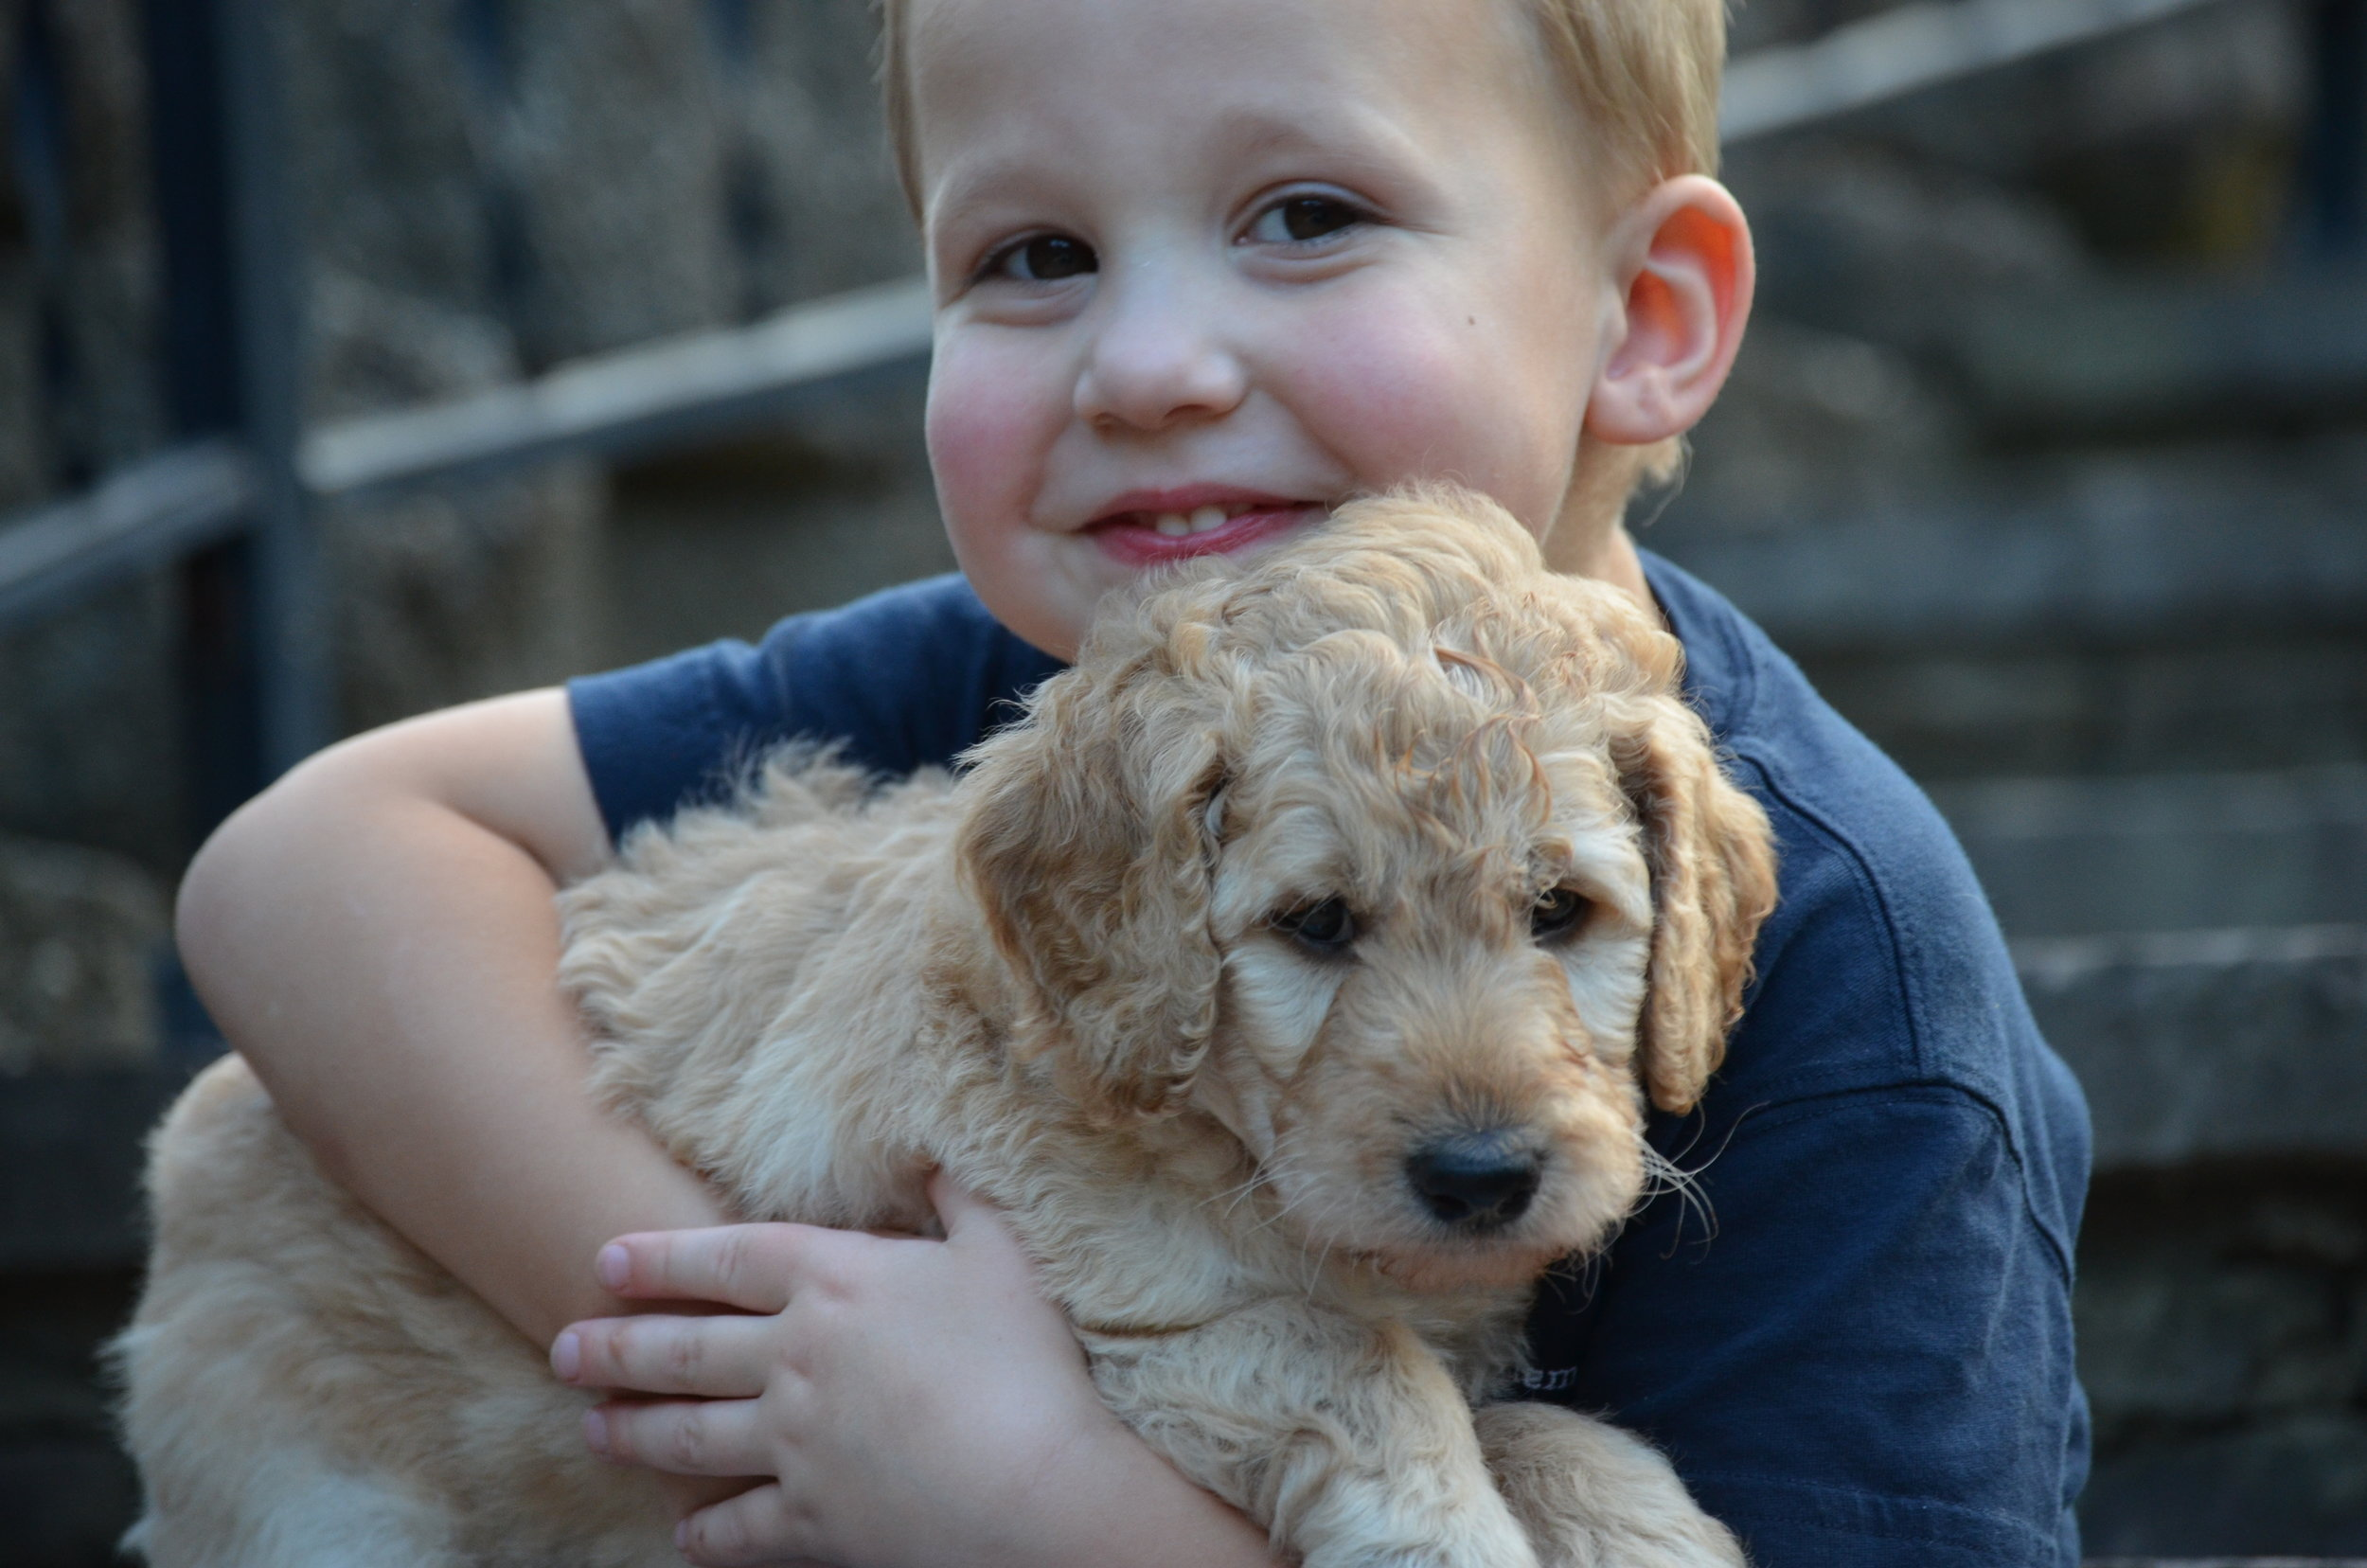 Sweetpea is an apricot Labradoodle who loves children